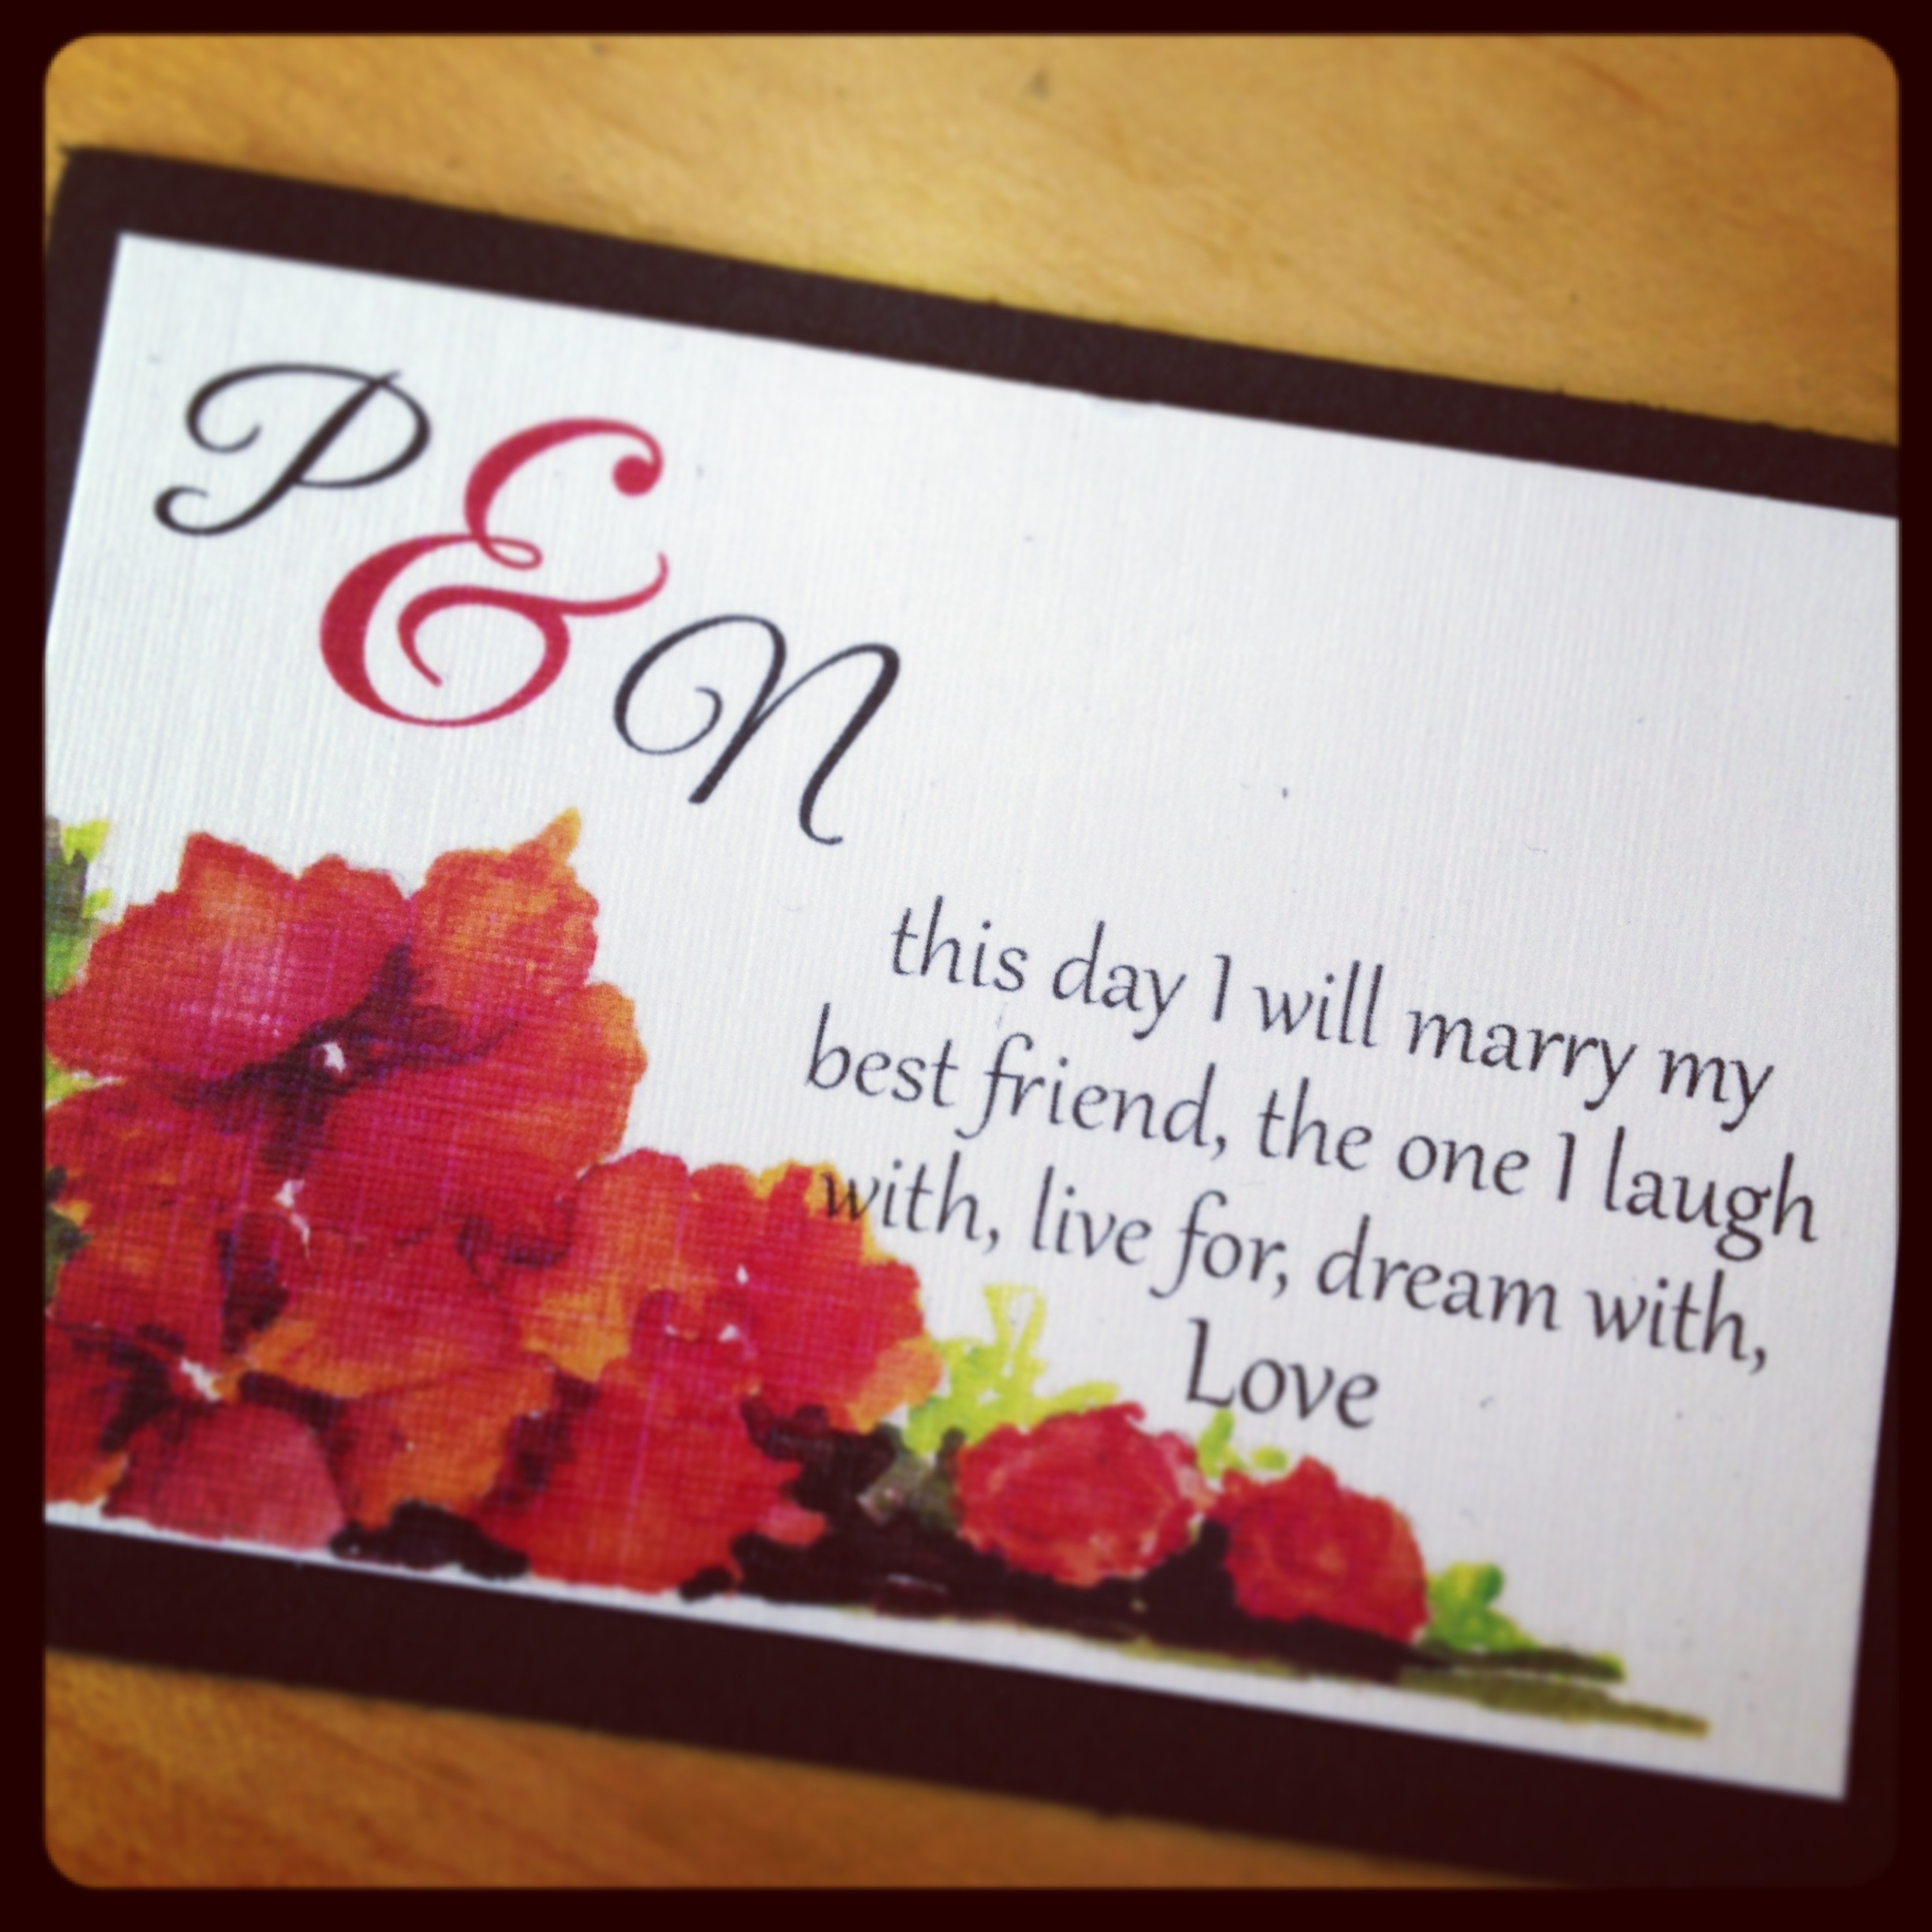 Modern Wedding Quotes For Invitation Ensign - Invitations and ...